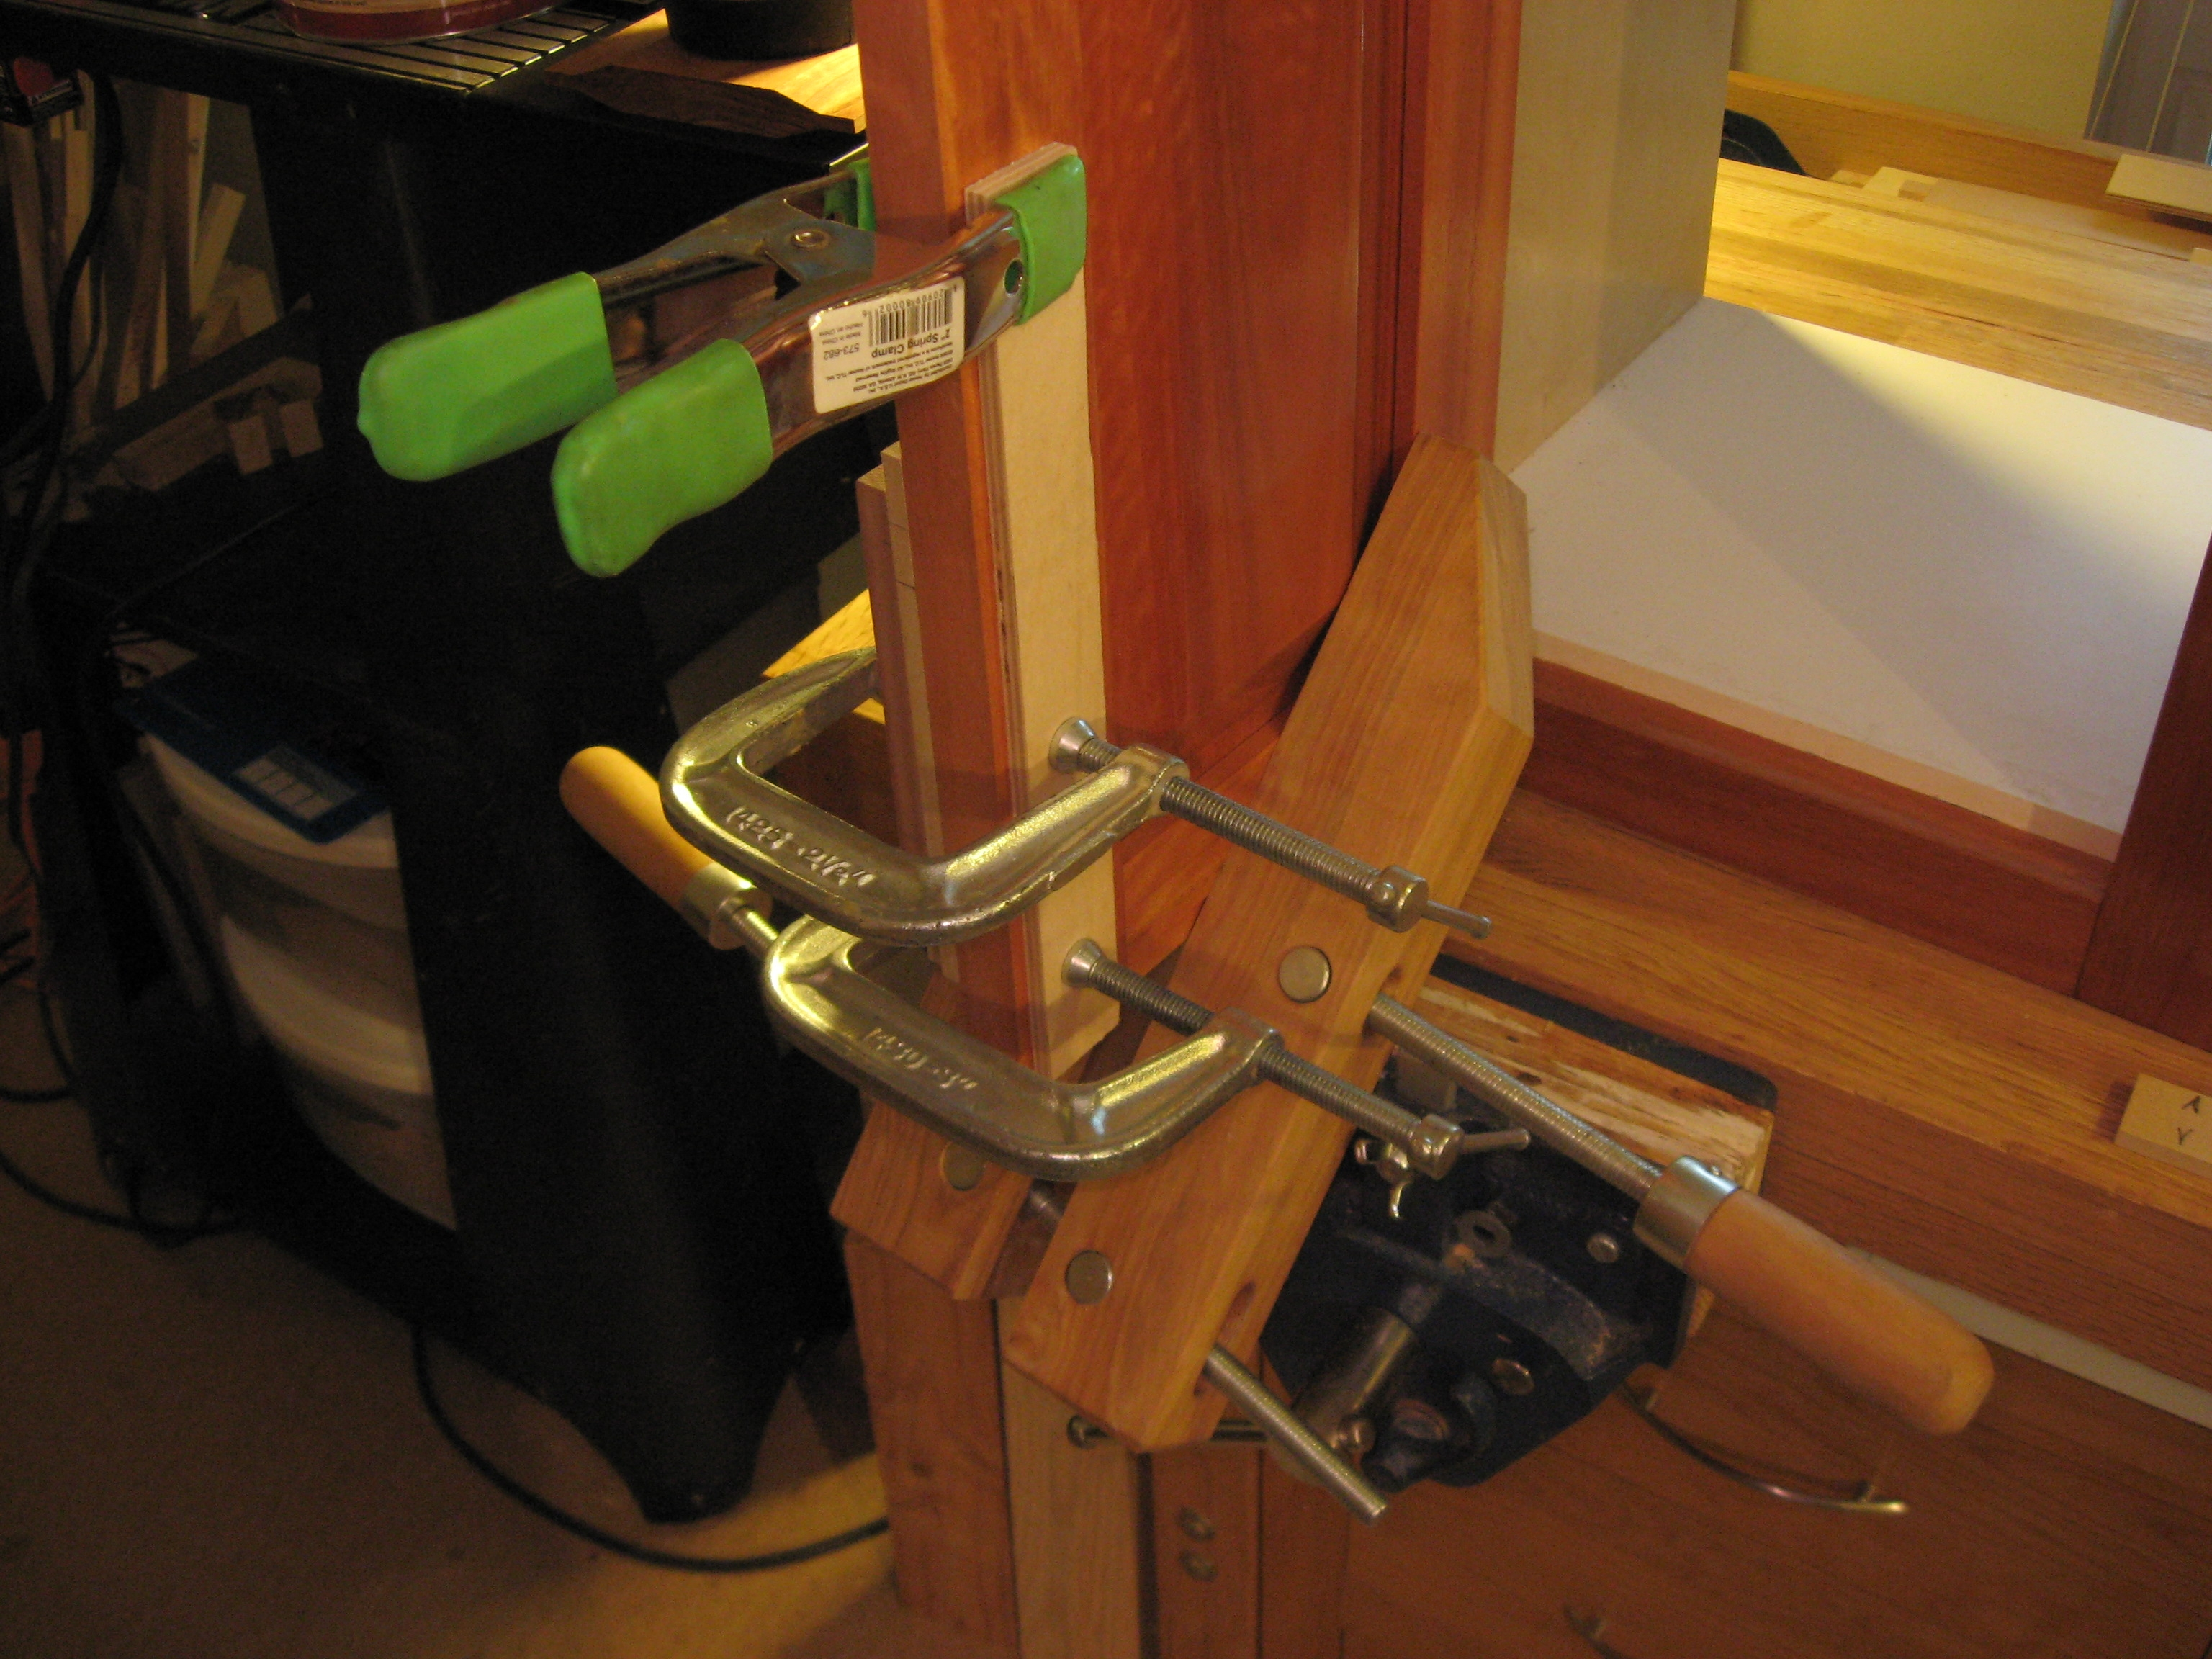 Using a jig makes installing cabinet hardware easy Helping With Homes